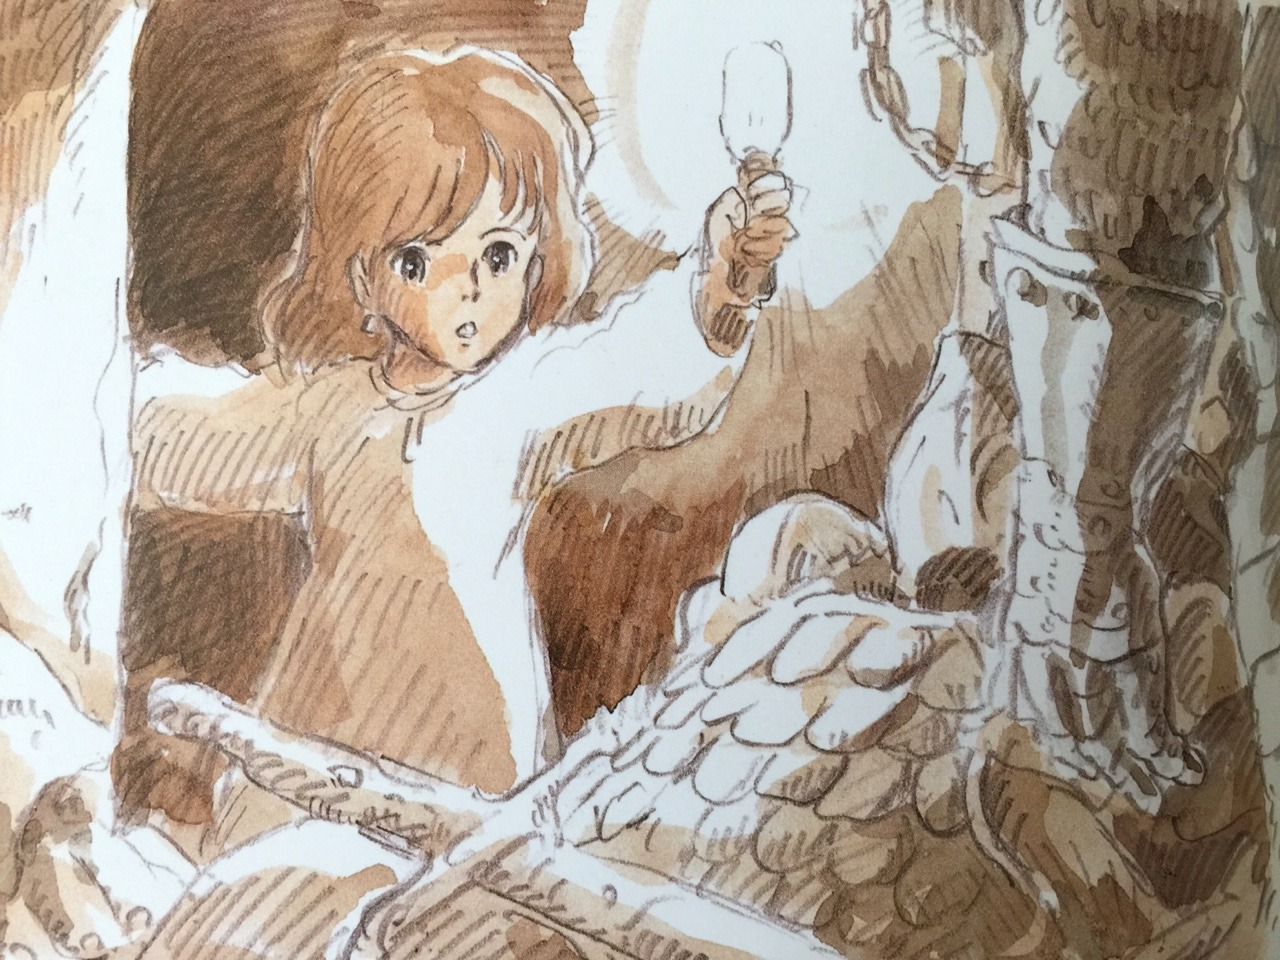 Production-Sketches-and-Concept-Work-for-Nausica-of-the-Valley-of-the-Wind-Hayao-Miyazaki-nausicaa-of-the-valley-of-the-wind-40590590-1280-960.jpg